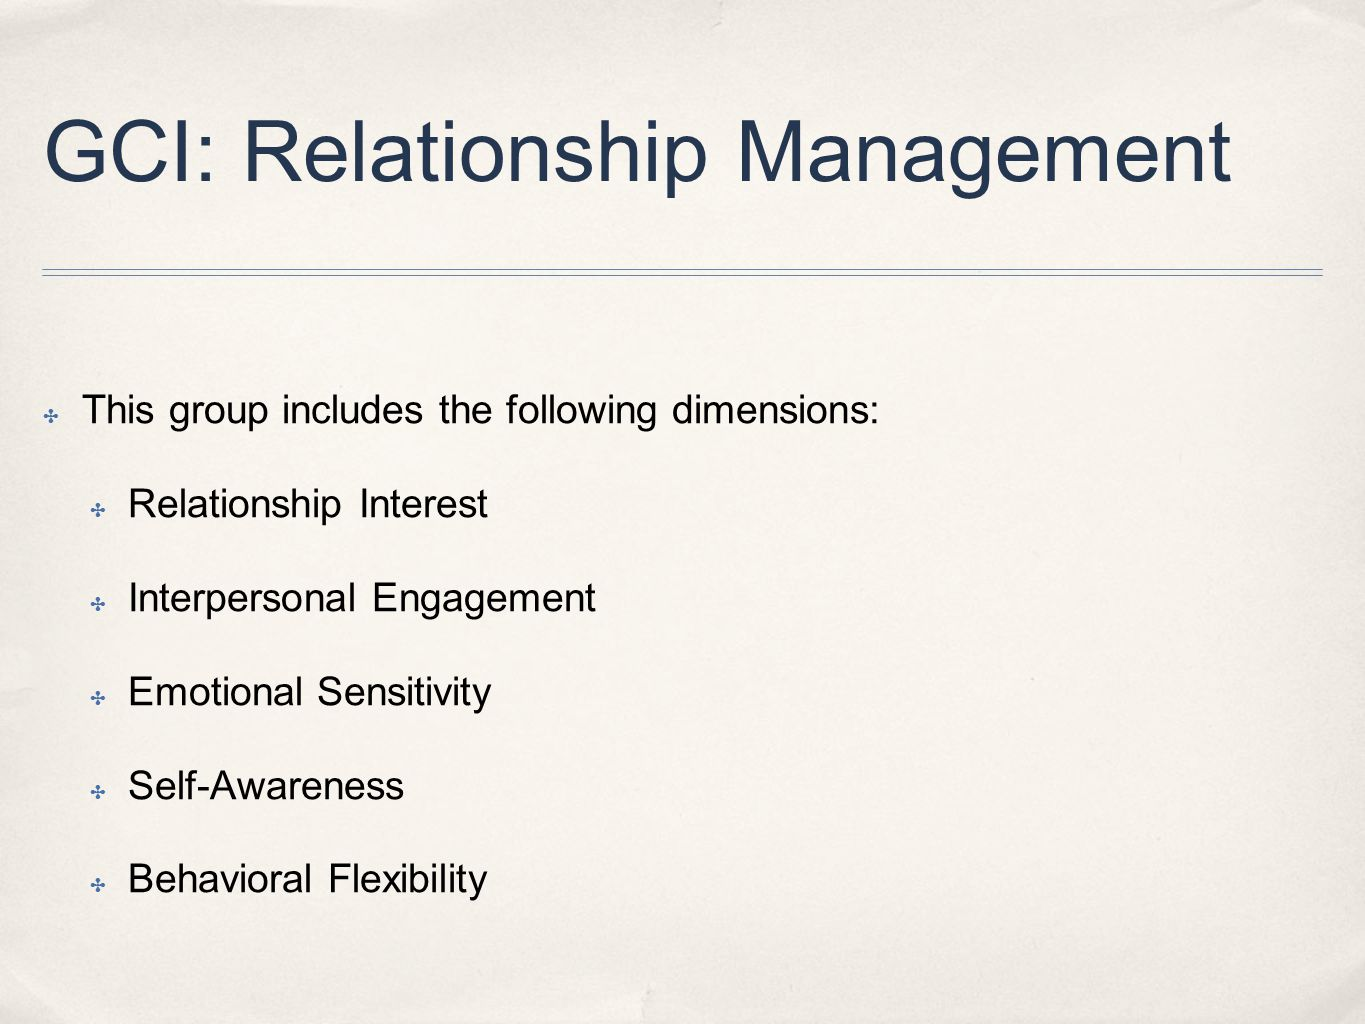 GCI: Relationship Management ✤ This group includes the following dimensions: ✤ Relationship Interest ✤ Interpersonal Engagement ✤ Emotional Sensitivity ✤ Self-Awareness ✤ Behavioral Flexibility